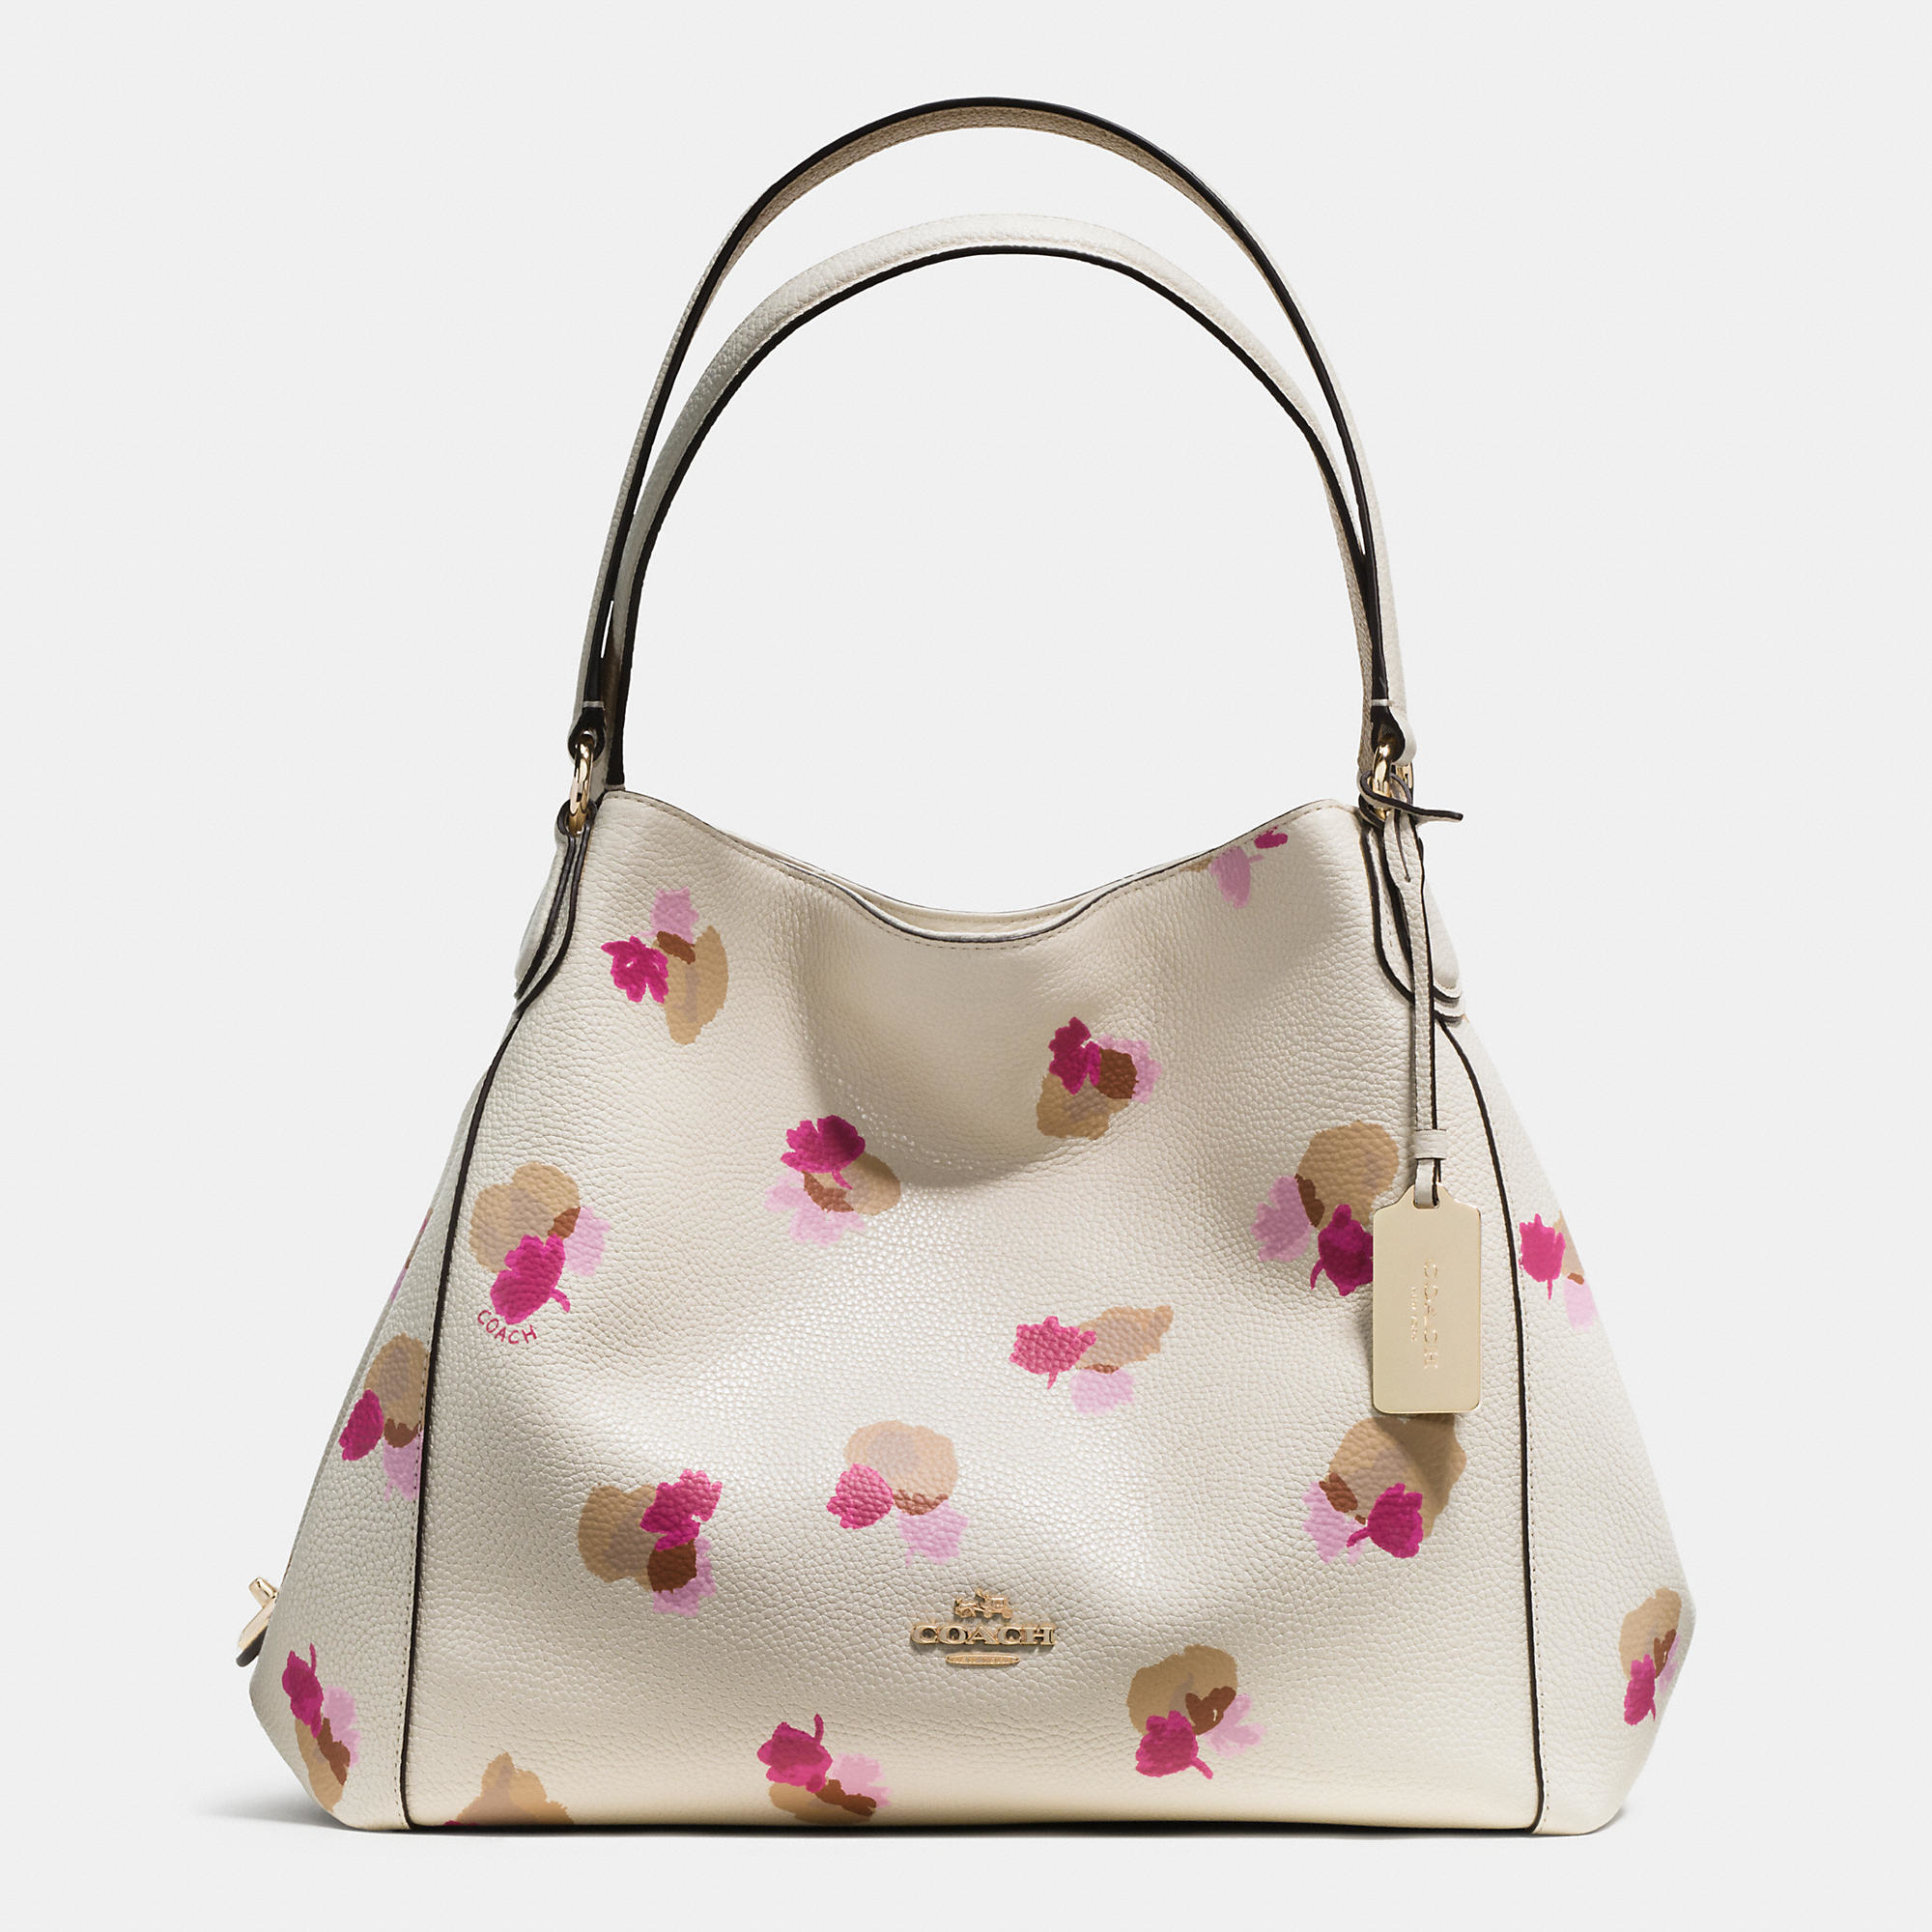 Lyst - COACH Edie Shoulder Bag 31 In Floral Print Leather 21957a5639dc0